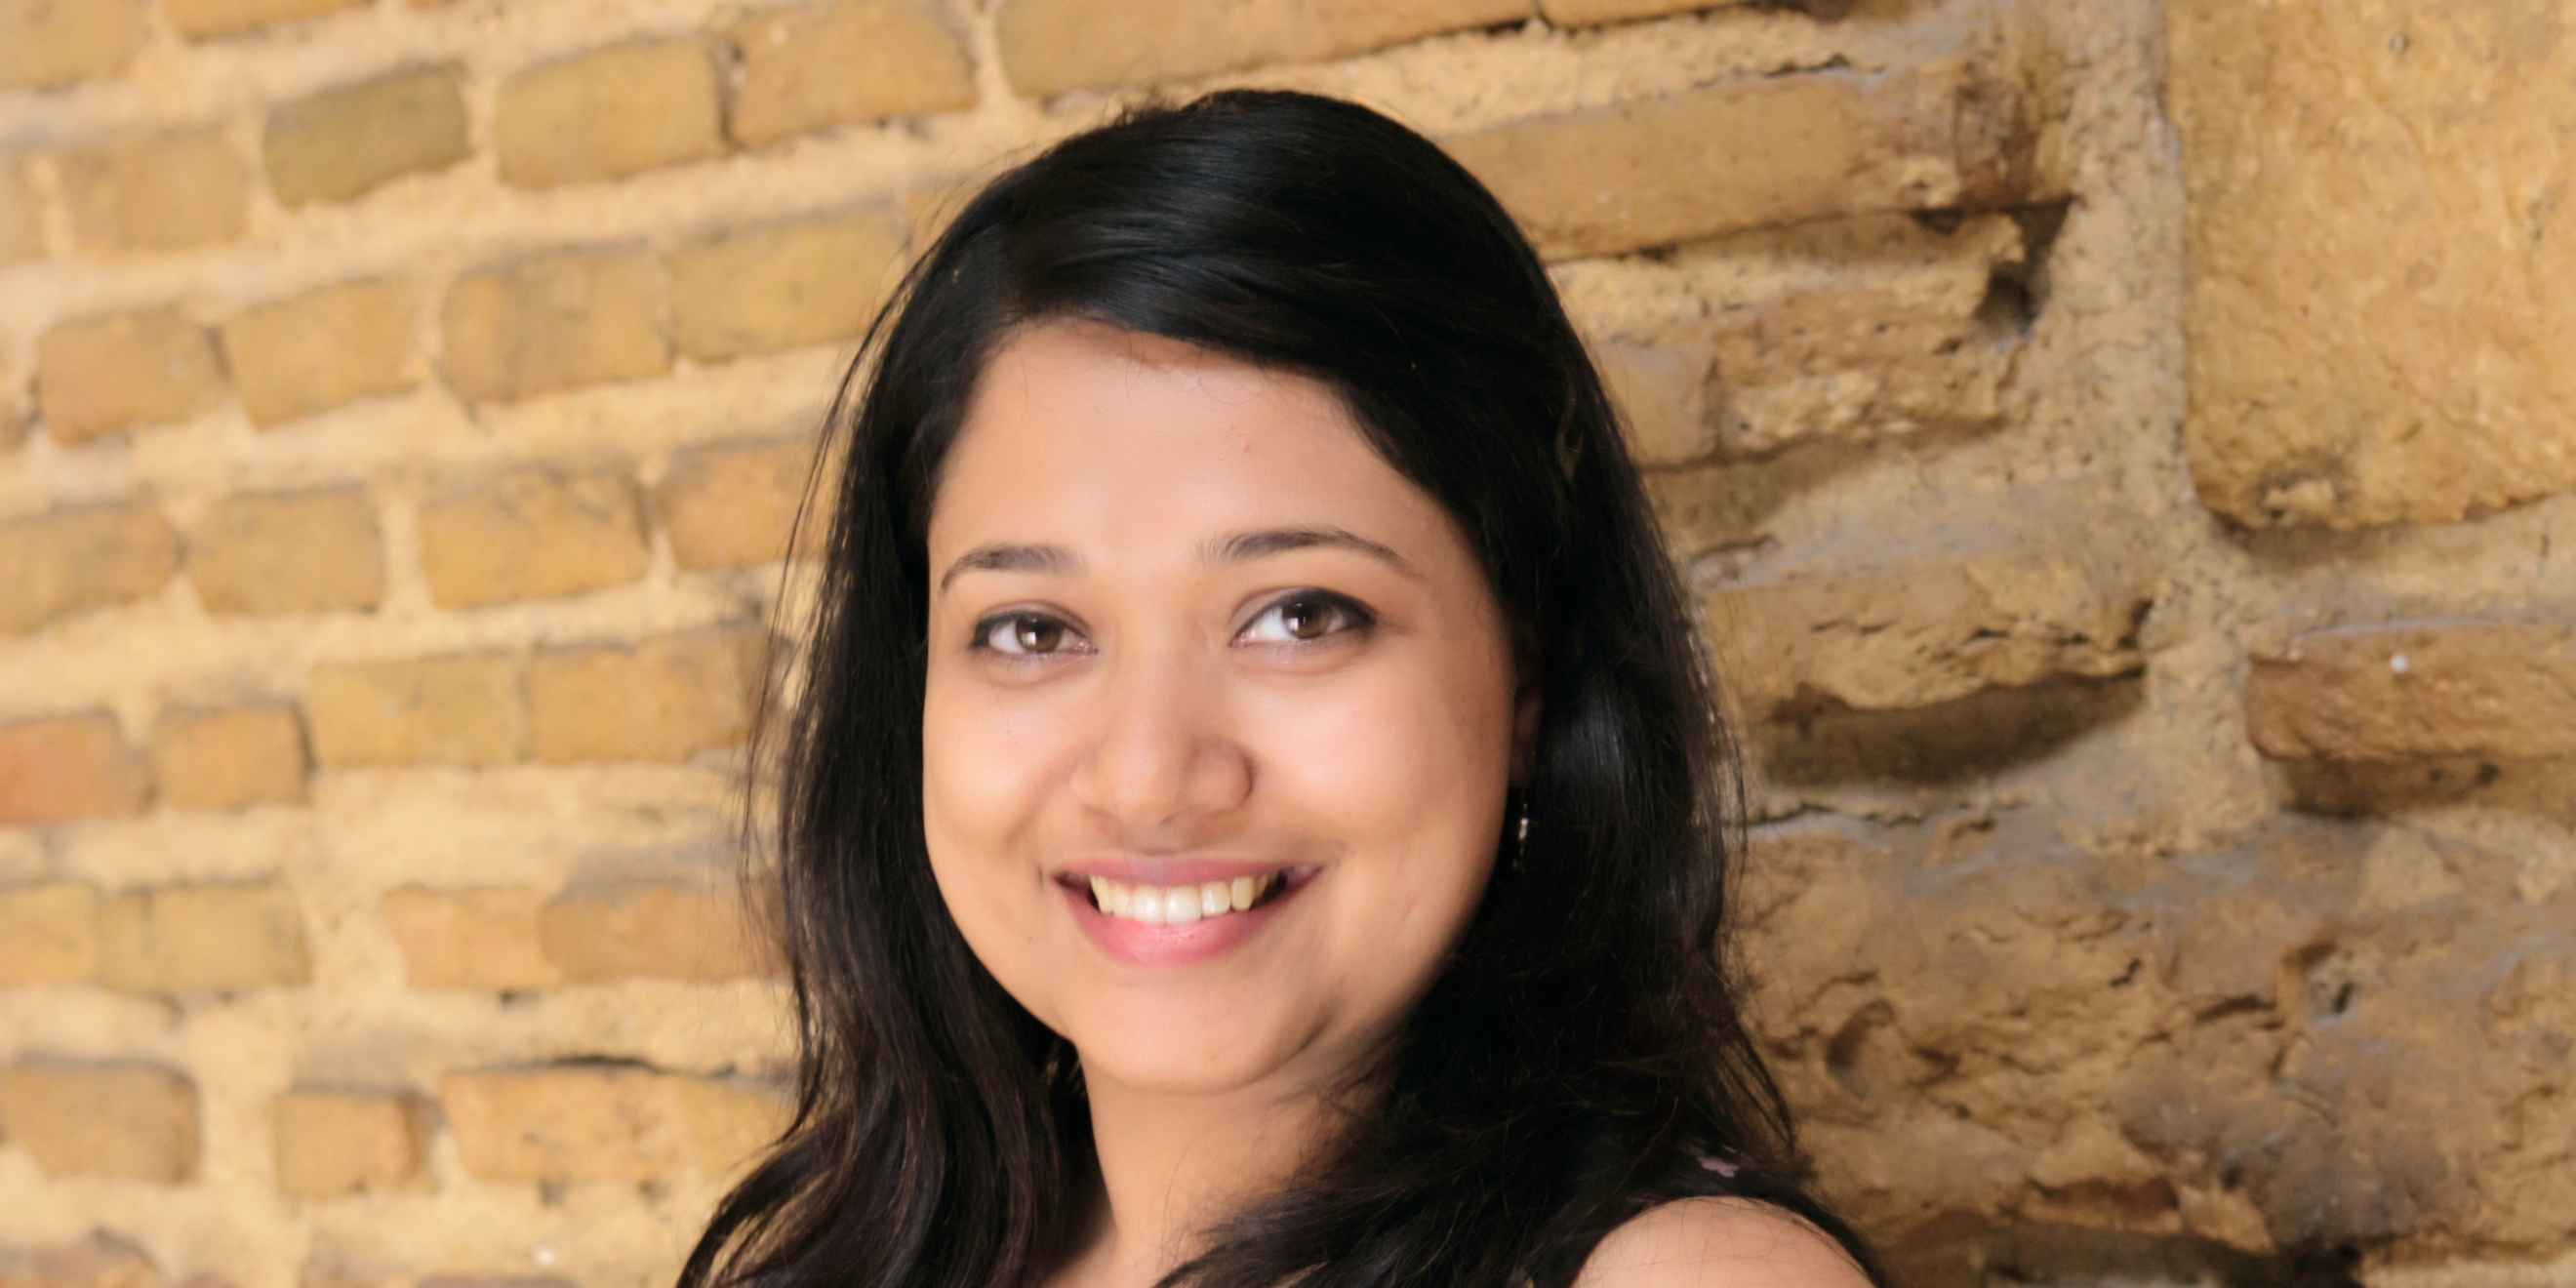 Sarmistha Chatterjee, India, participant in the GCLP 2017 edition